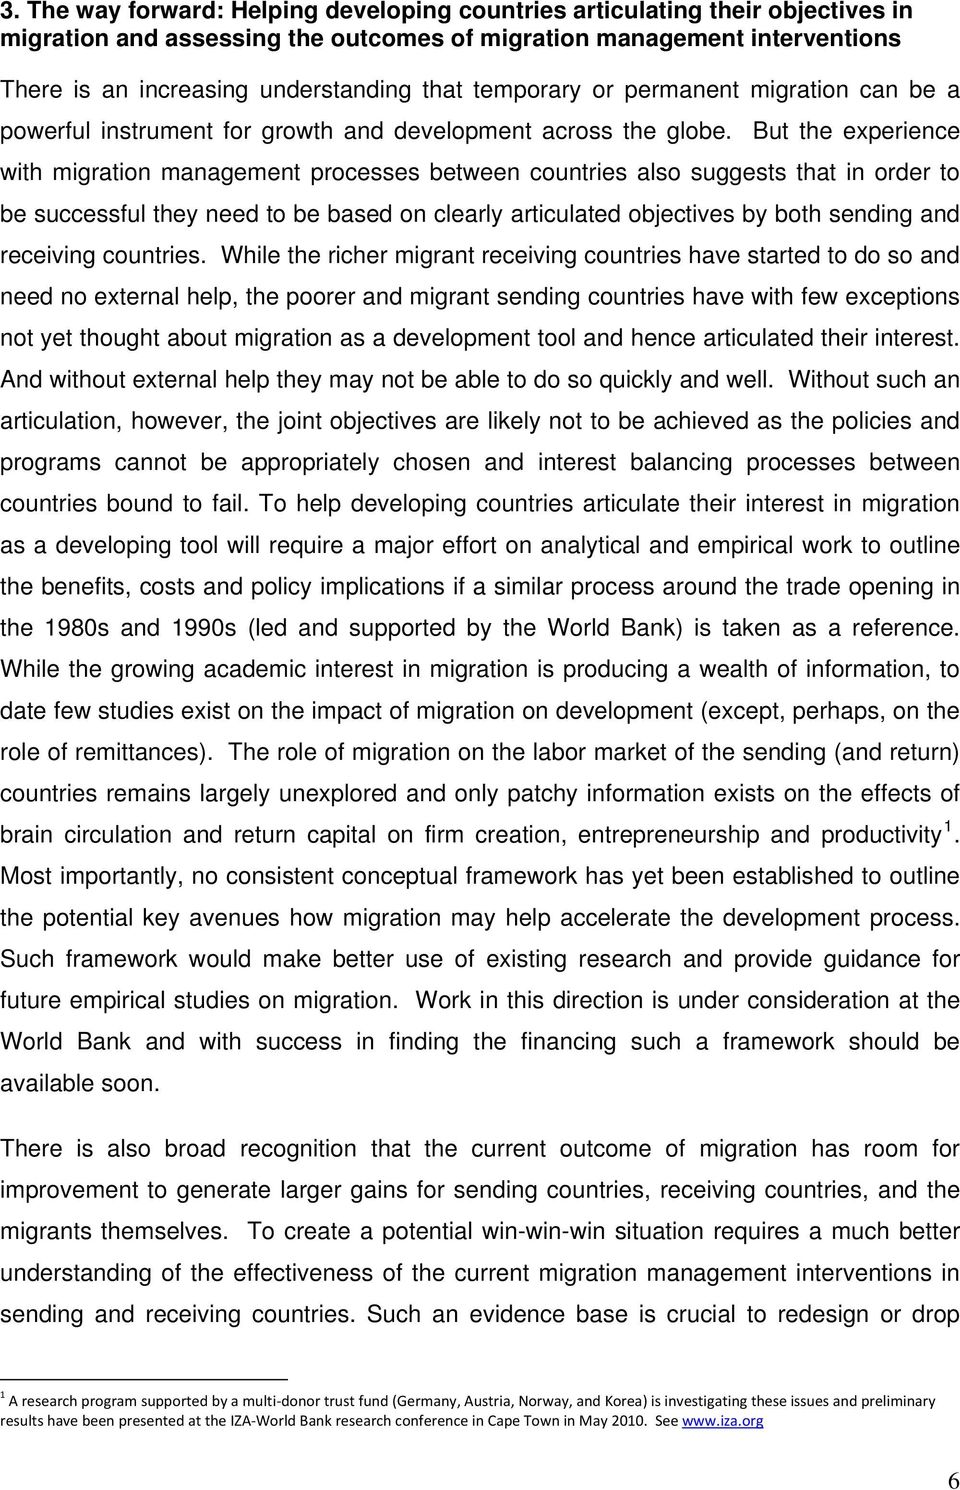 But the experience with migration management processes between countries also suggests that in order to be successful they need to be based on clearly articulated objectives by both sending and